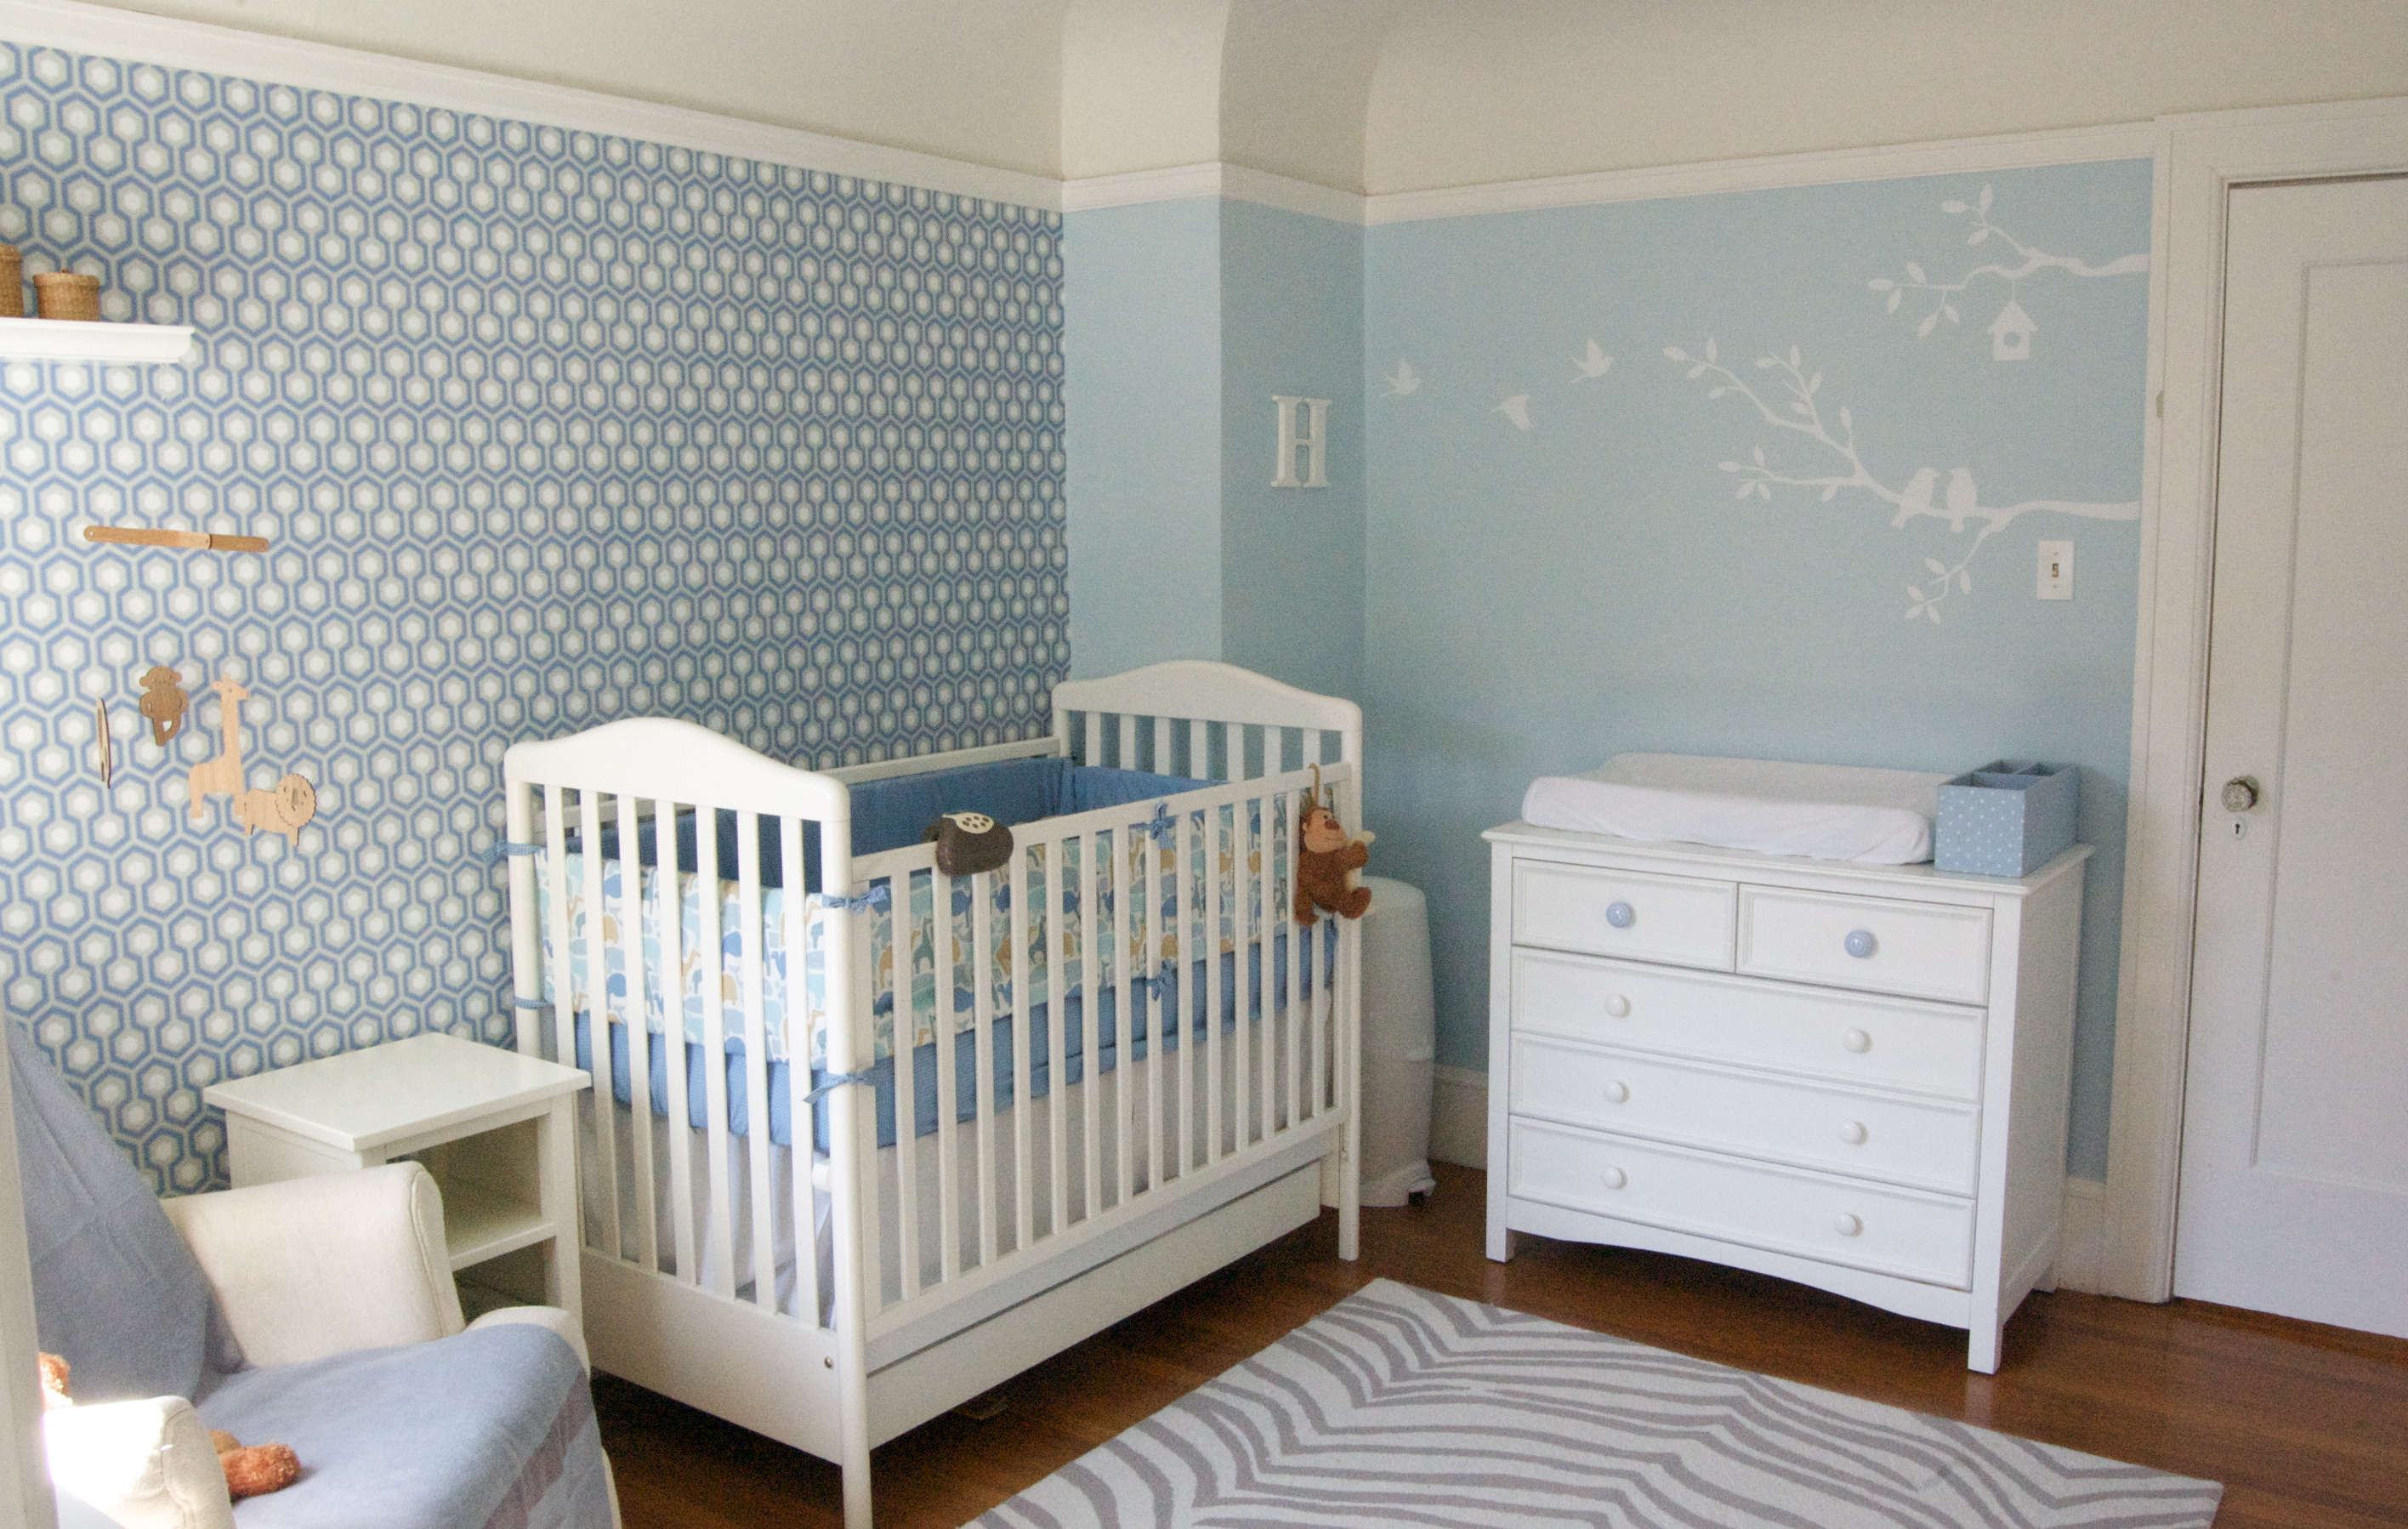 1000 images about baby room ideas on pinterest nurseries cribs and baby rooms - Baby nursey ideas ...